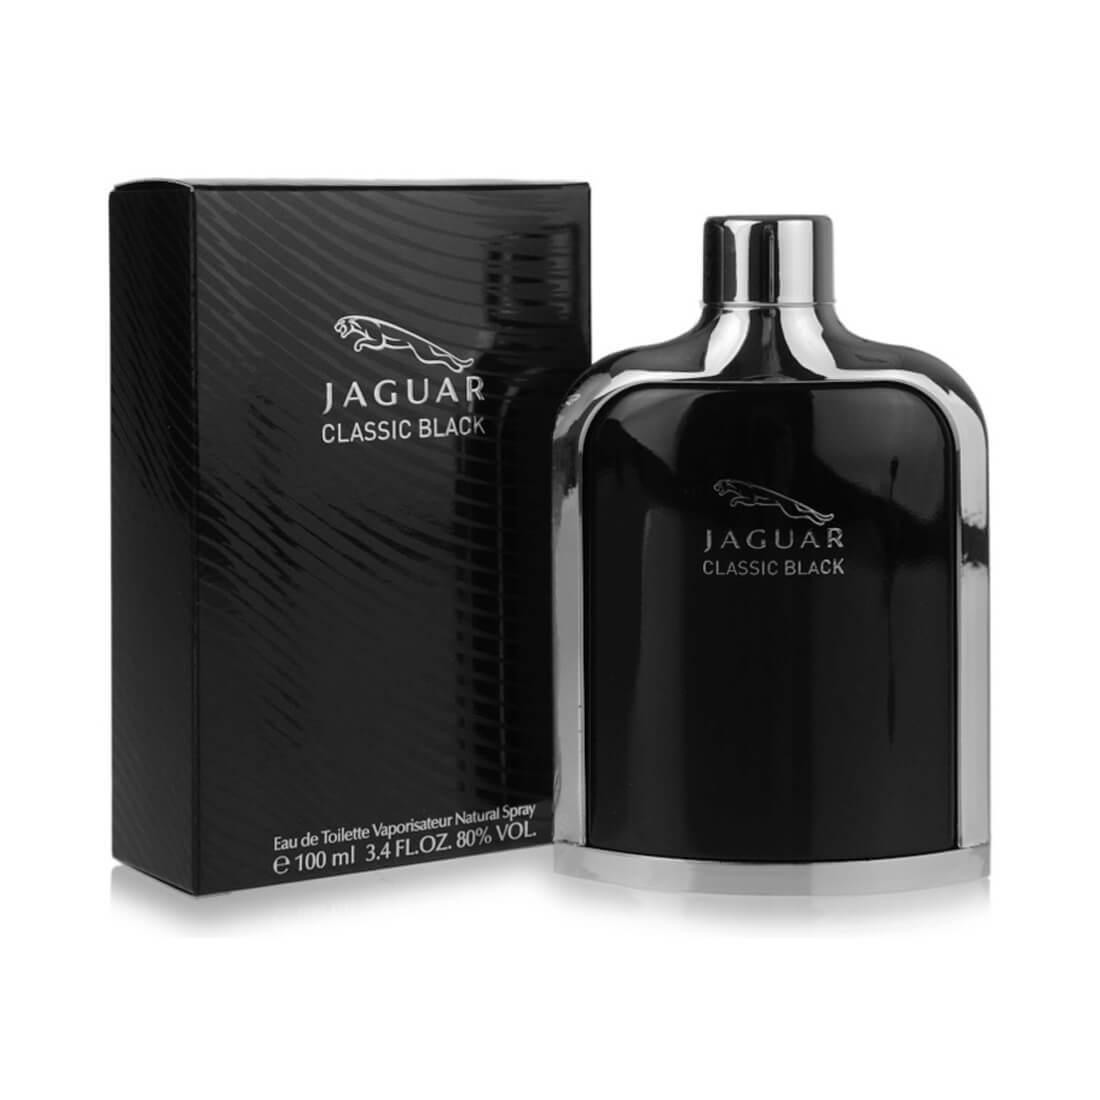 Jaguar Classic Black EDT Perfume For Men - 100ml